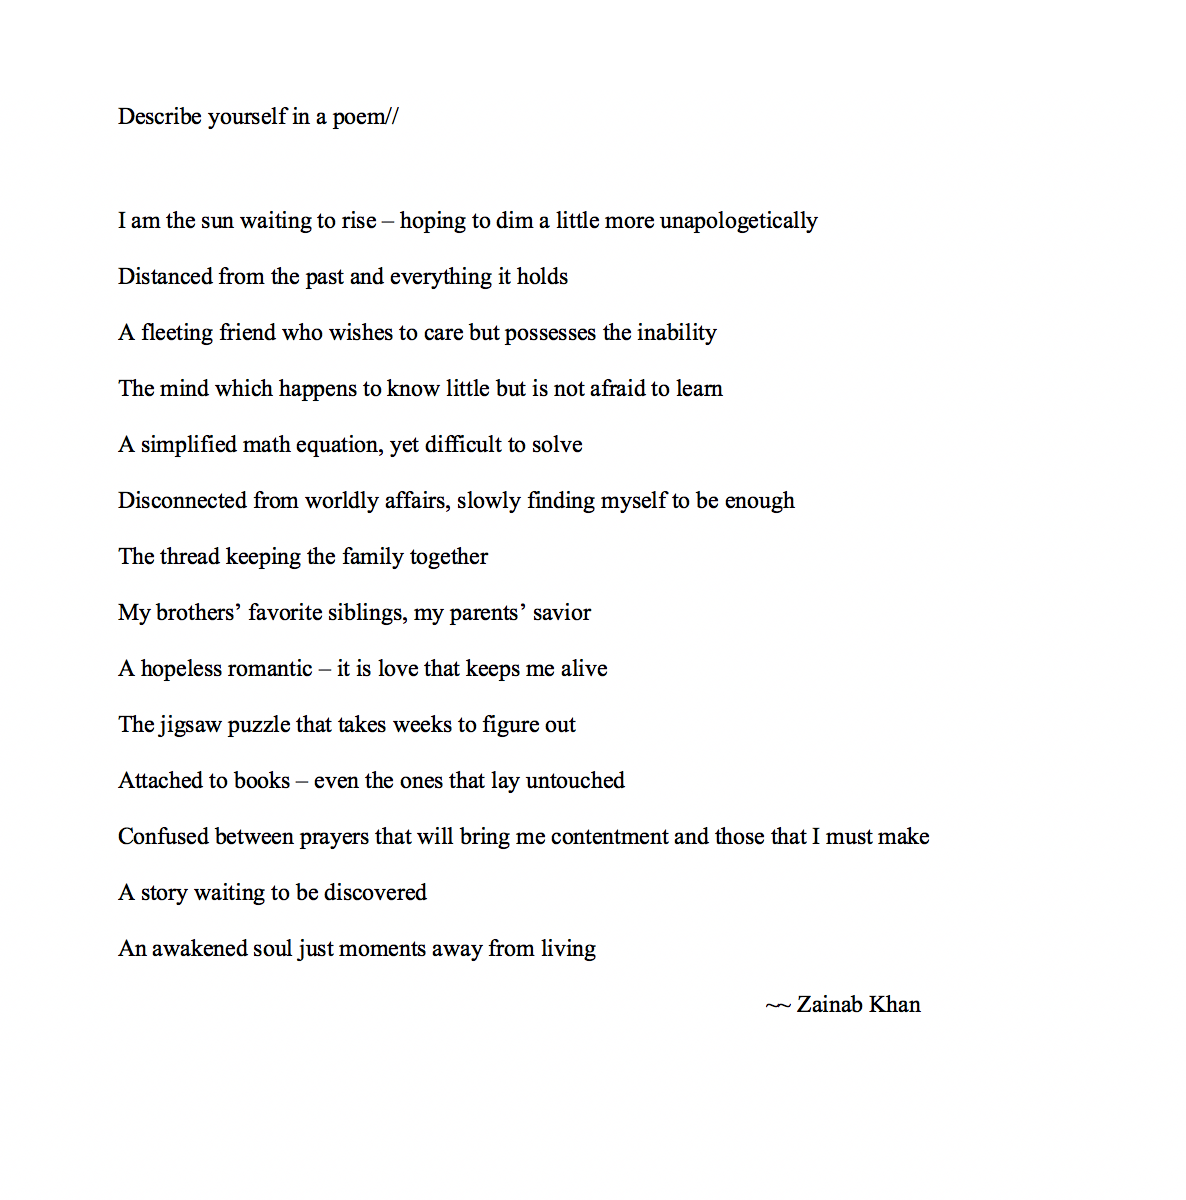 Poems about waiting for someone